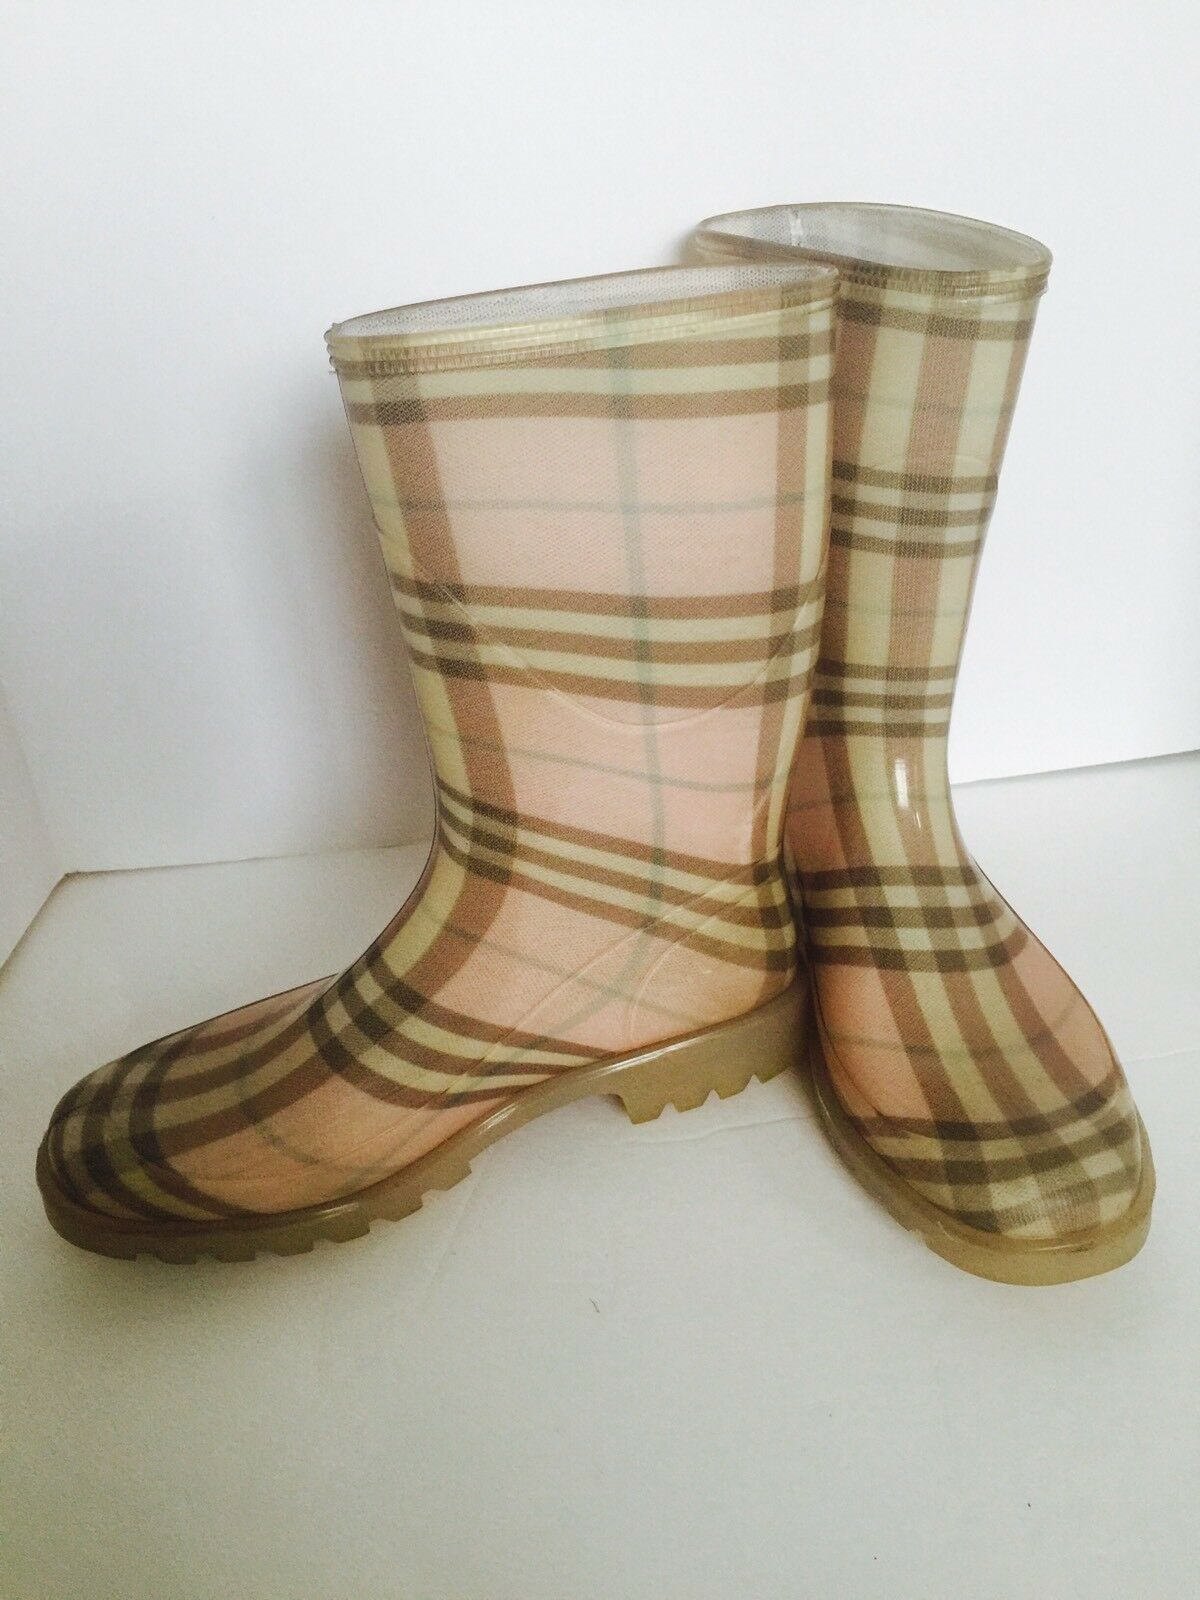 BURBERRY Pink Nova Check plaid  Rain boots / Wellies Sz 37 NICE!